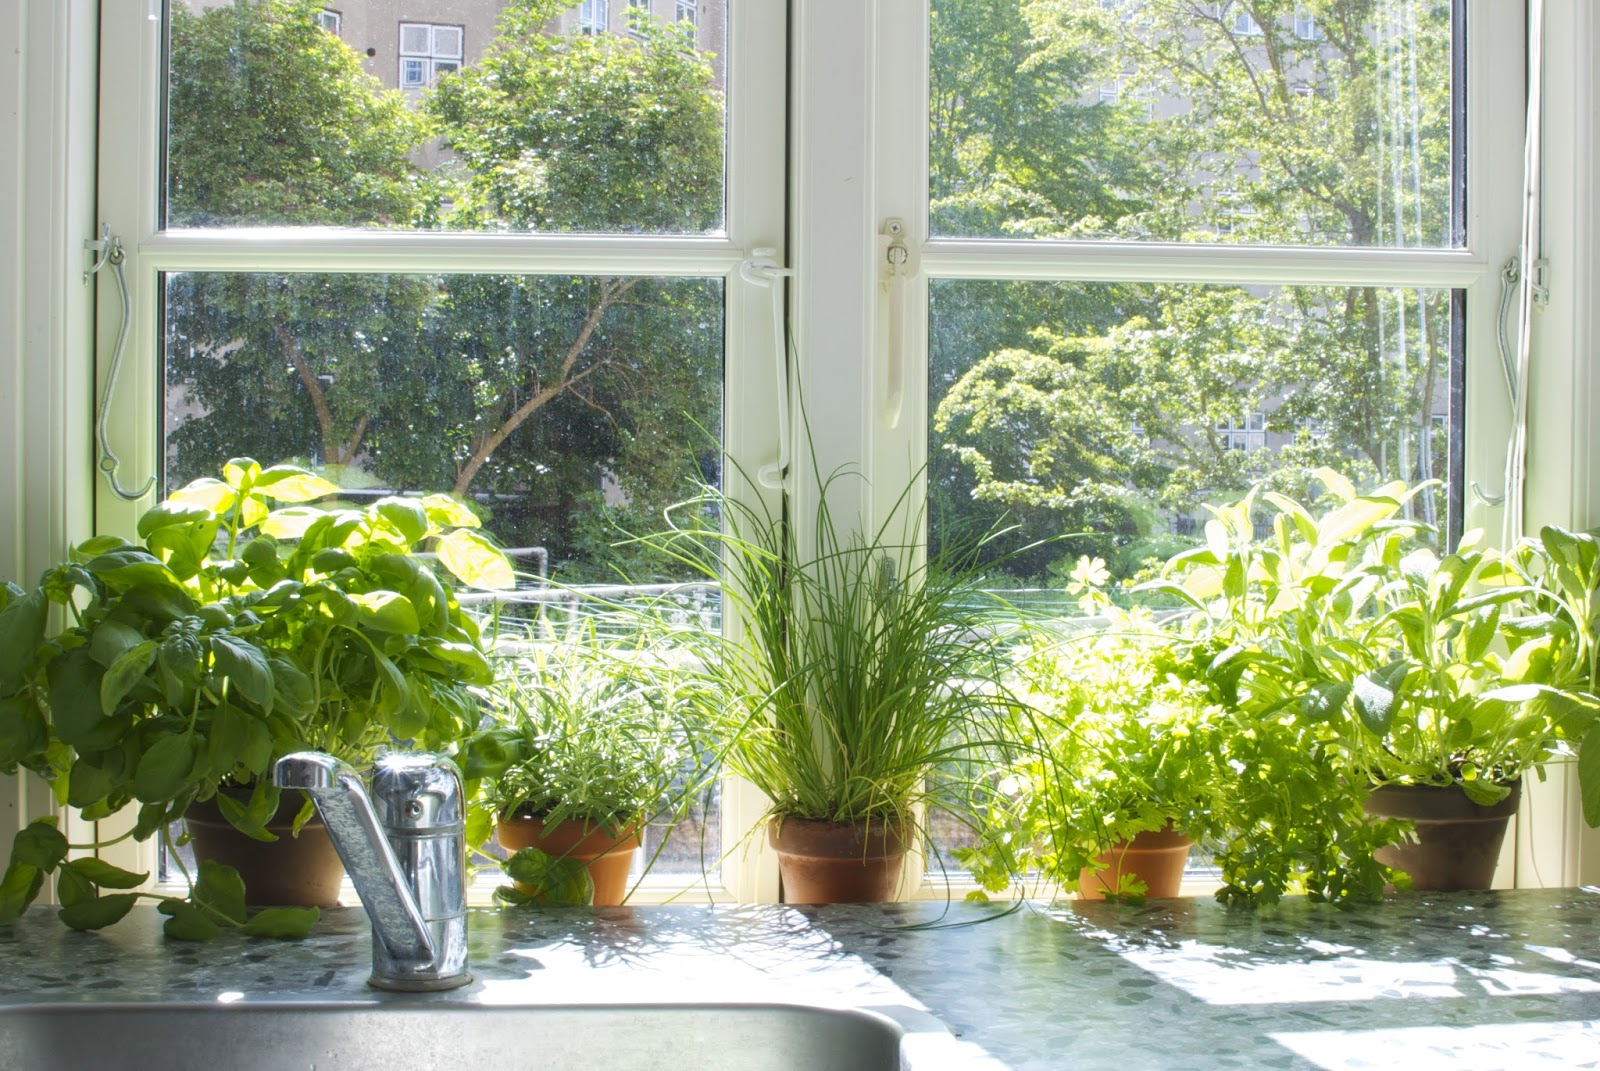 Grow Your Own Indoor Herb Garden Indoor herb garden grow one on your own with these tips diyvila indoor herb garden grow one on your own with these tips workwithnaturefo